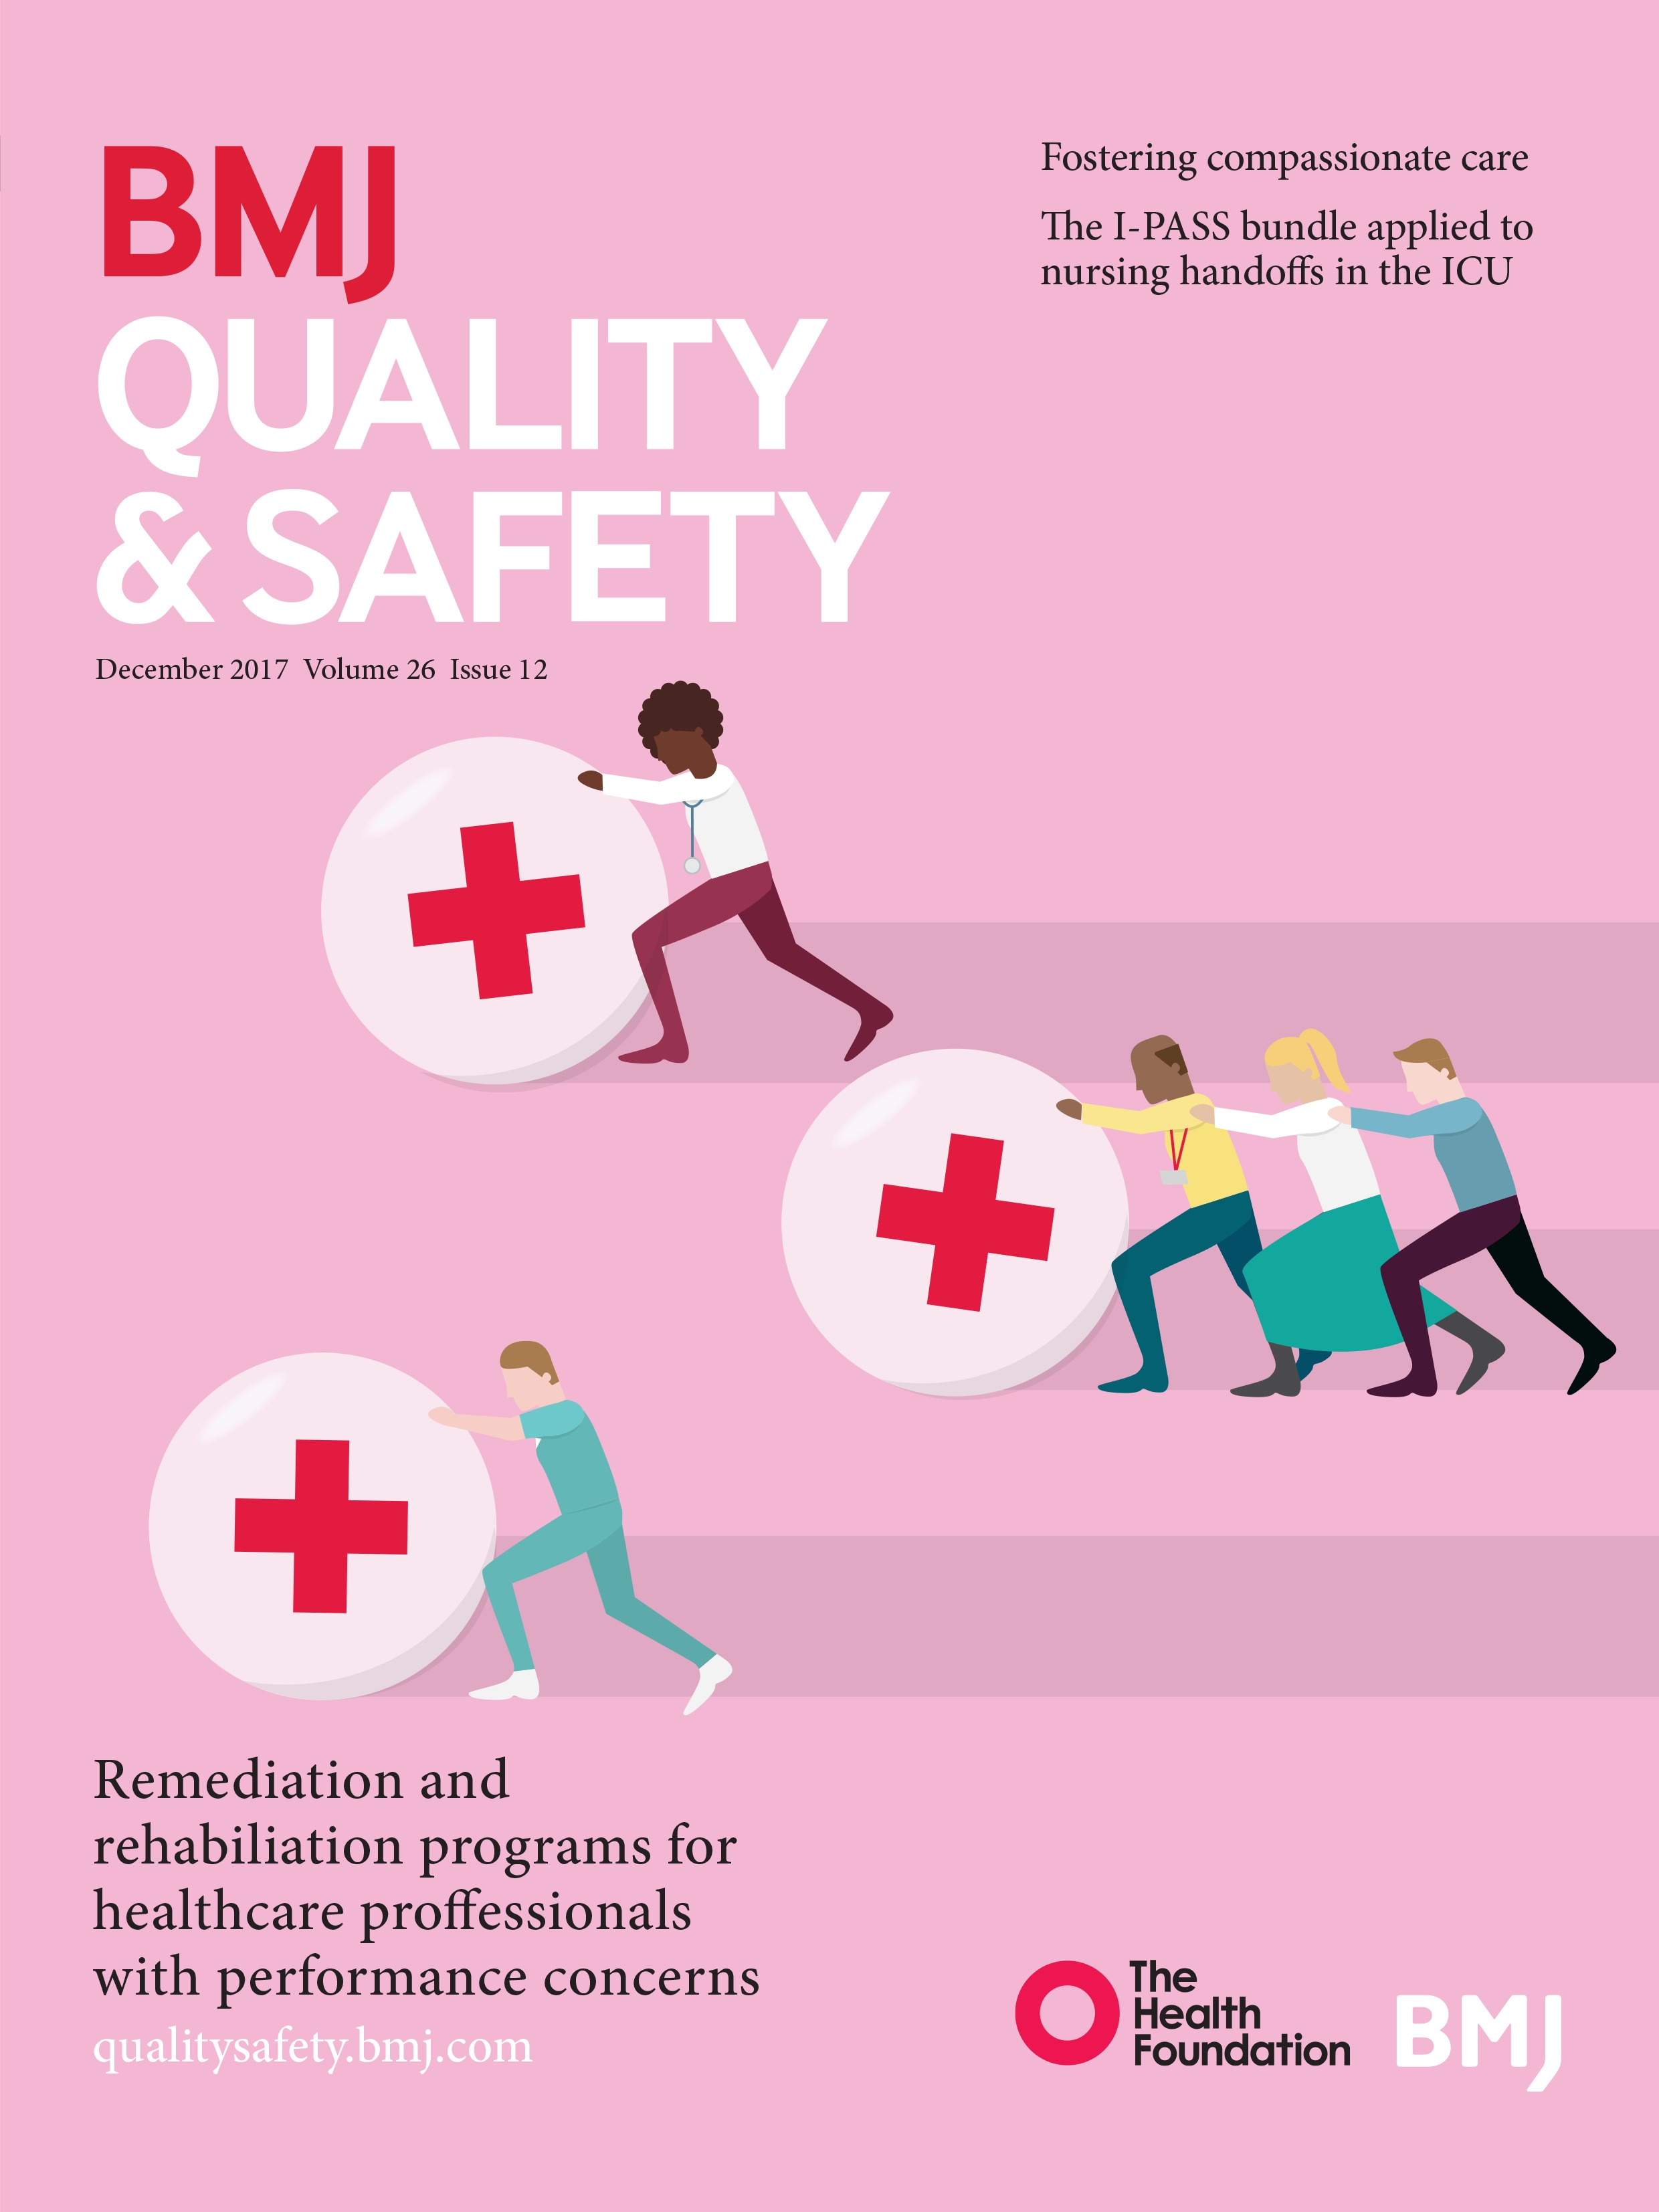 Framework for direct observation of performance and safety in